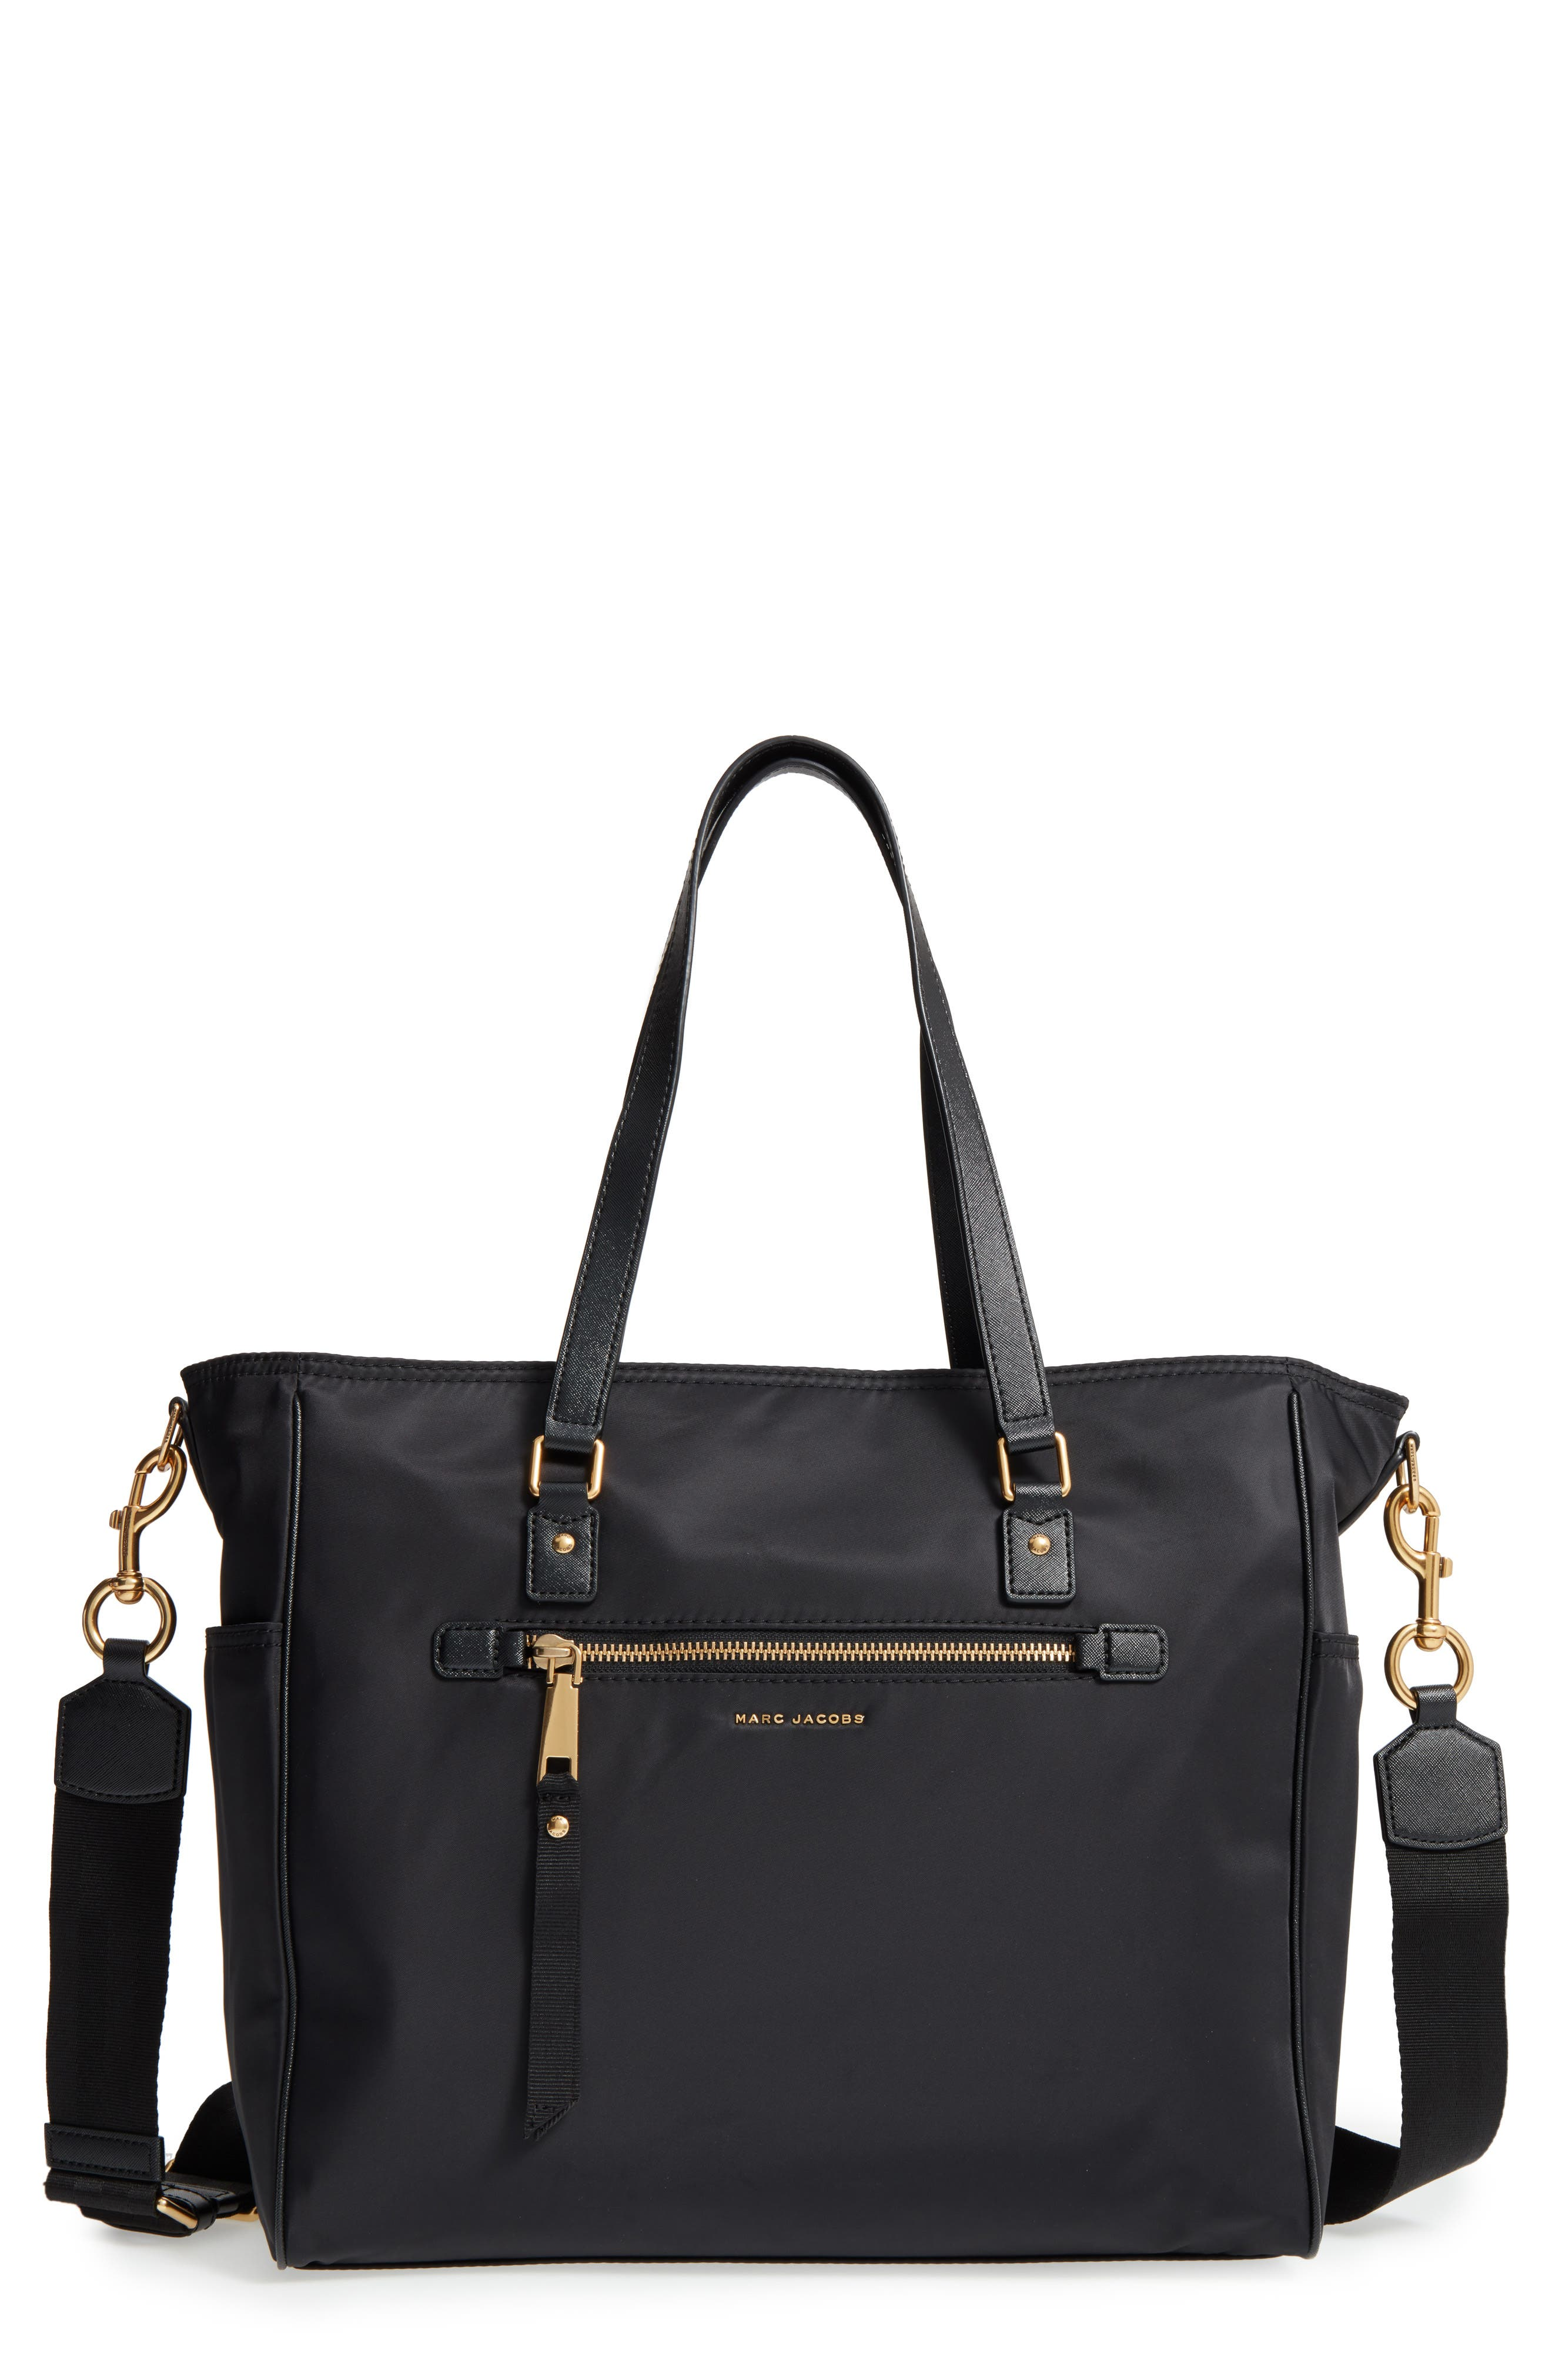 MARC JACOBS Trooper Nylon Baby Bag